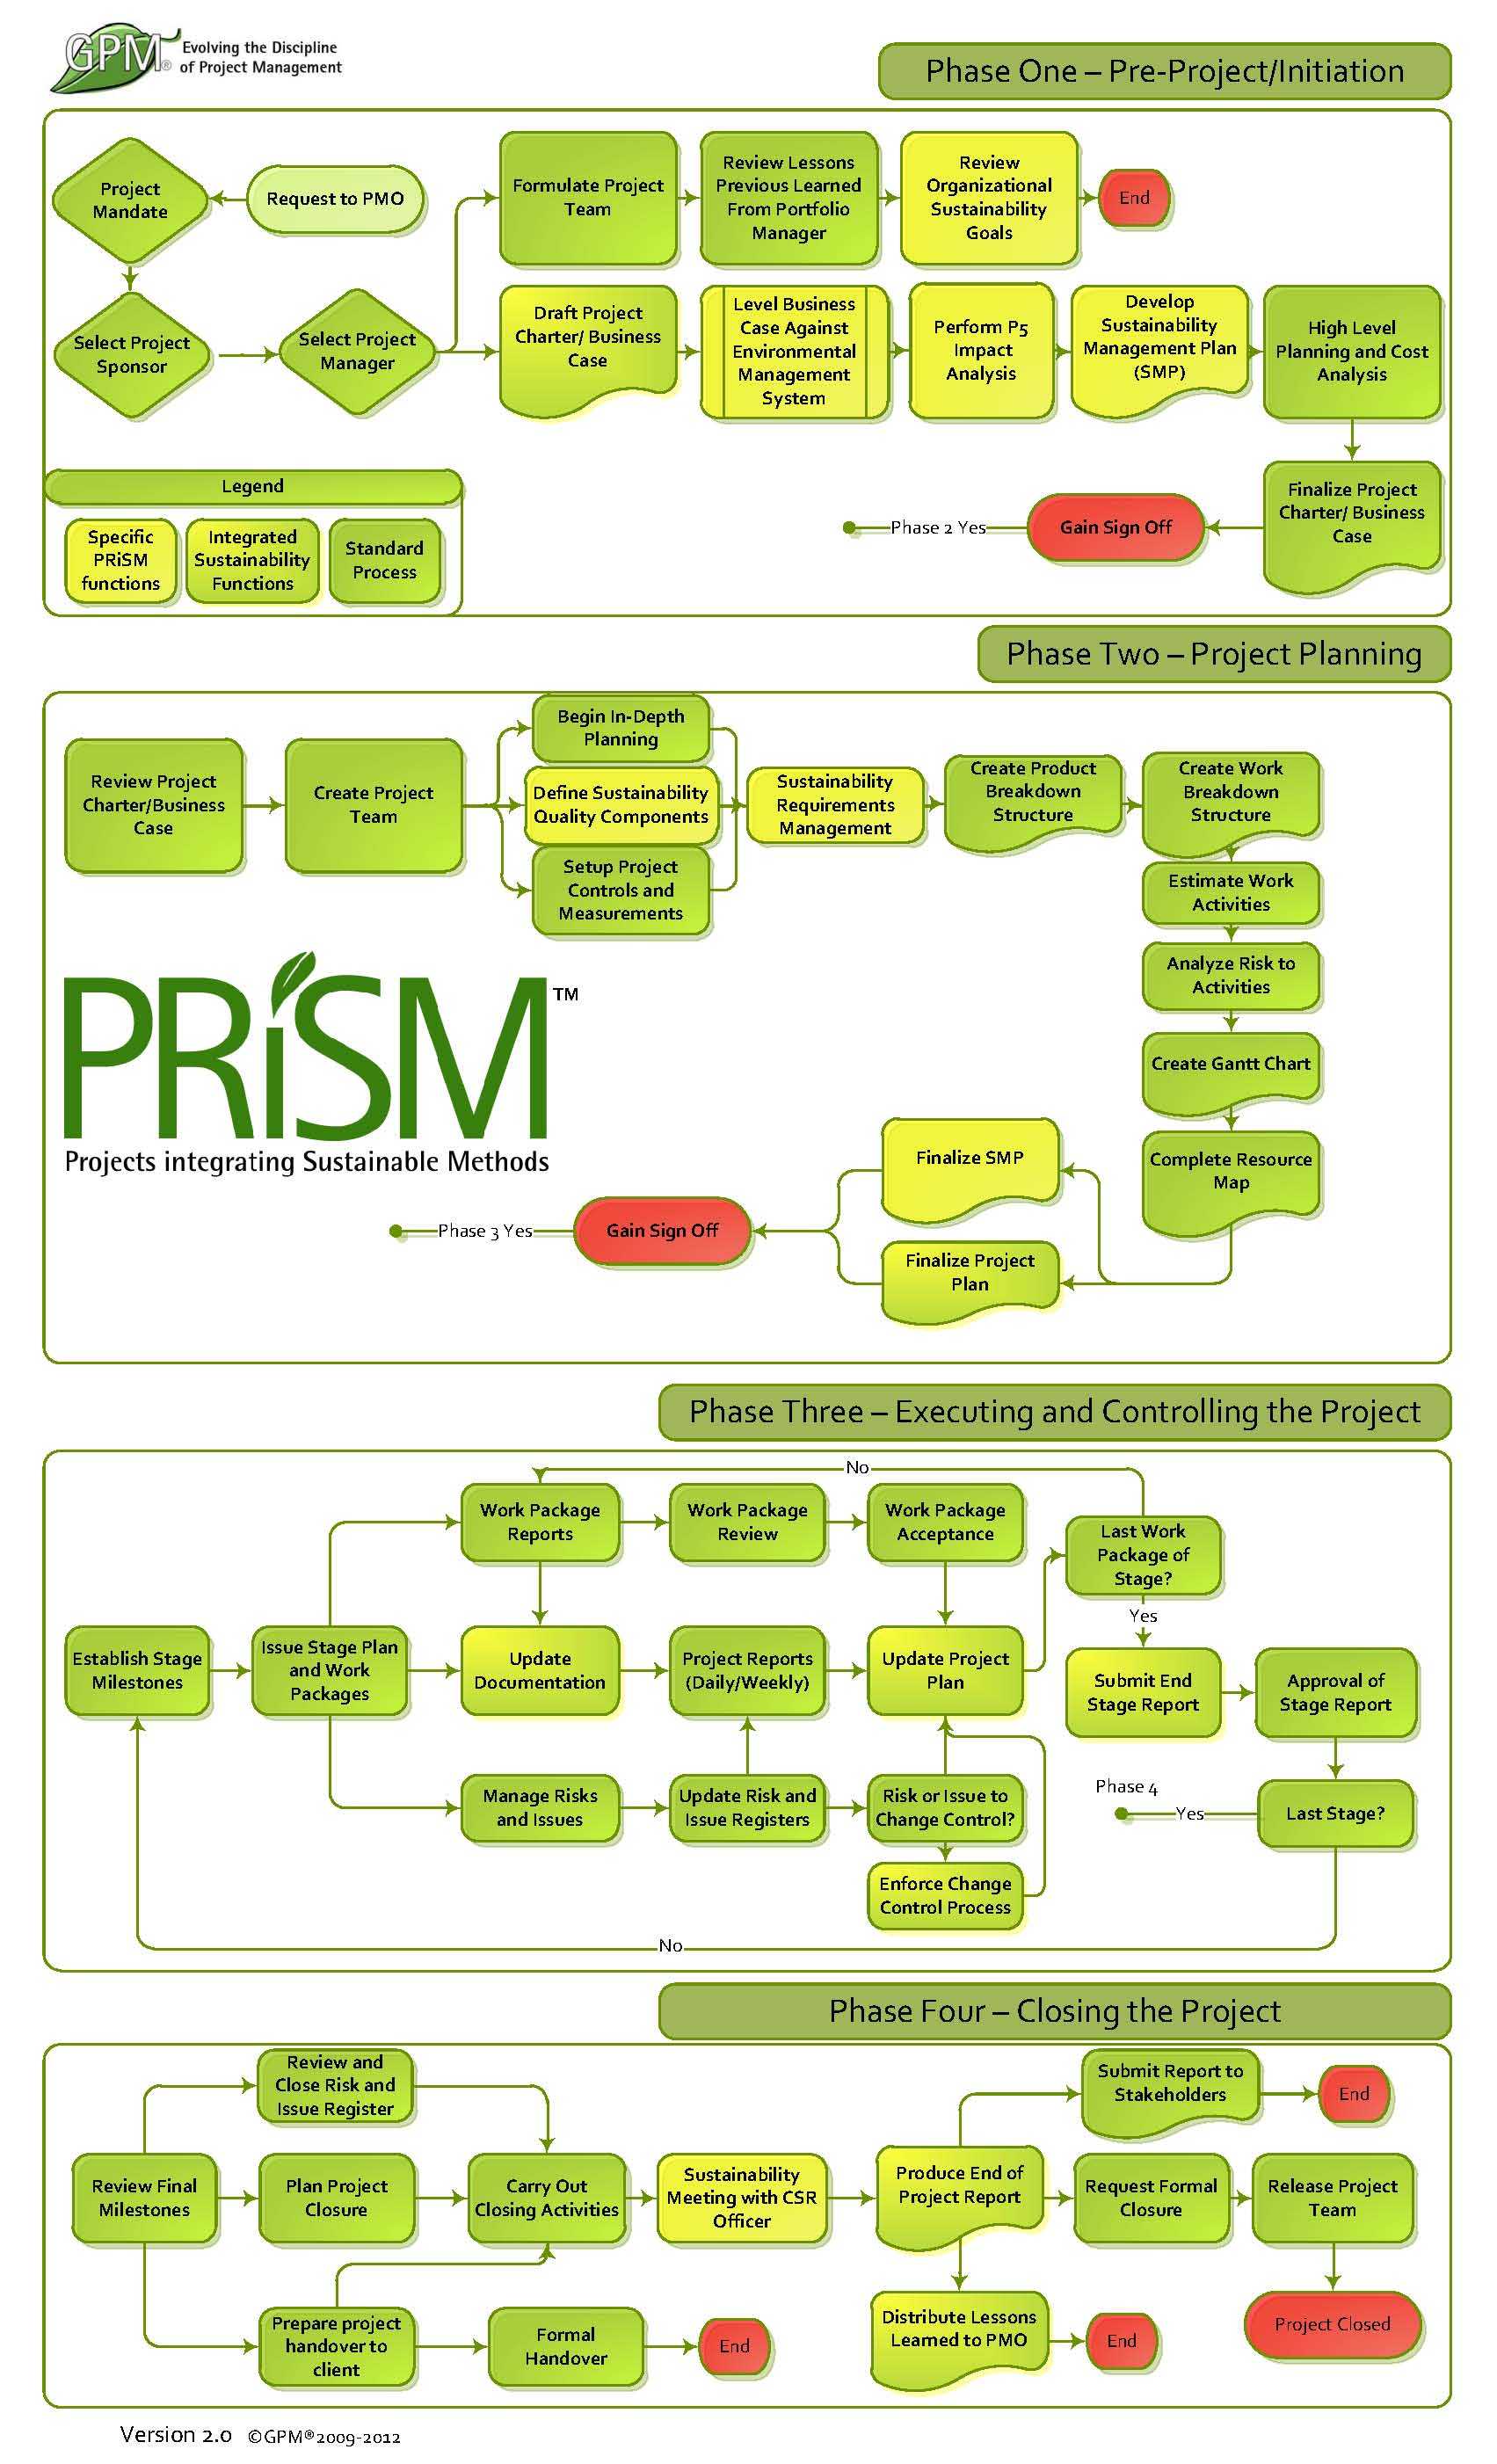 Template For Organizational Chart: PRiSM Flowchart.jpg - Wikimedia Commons,Chart